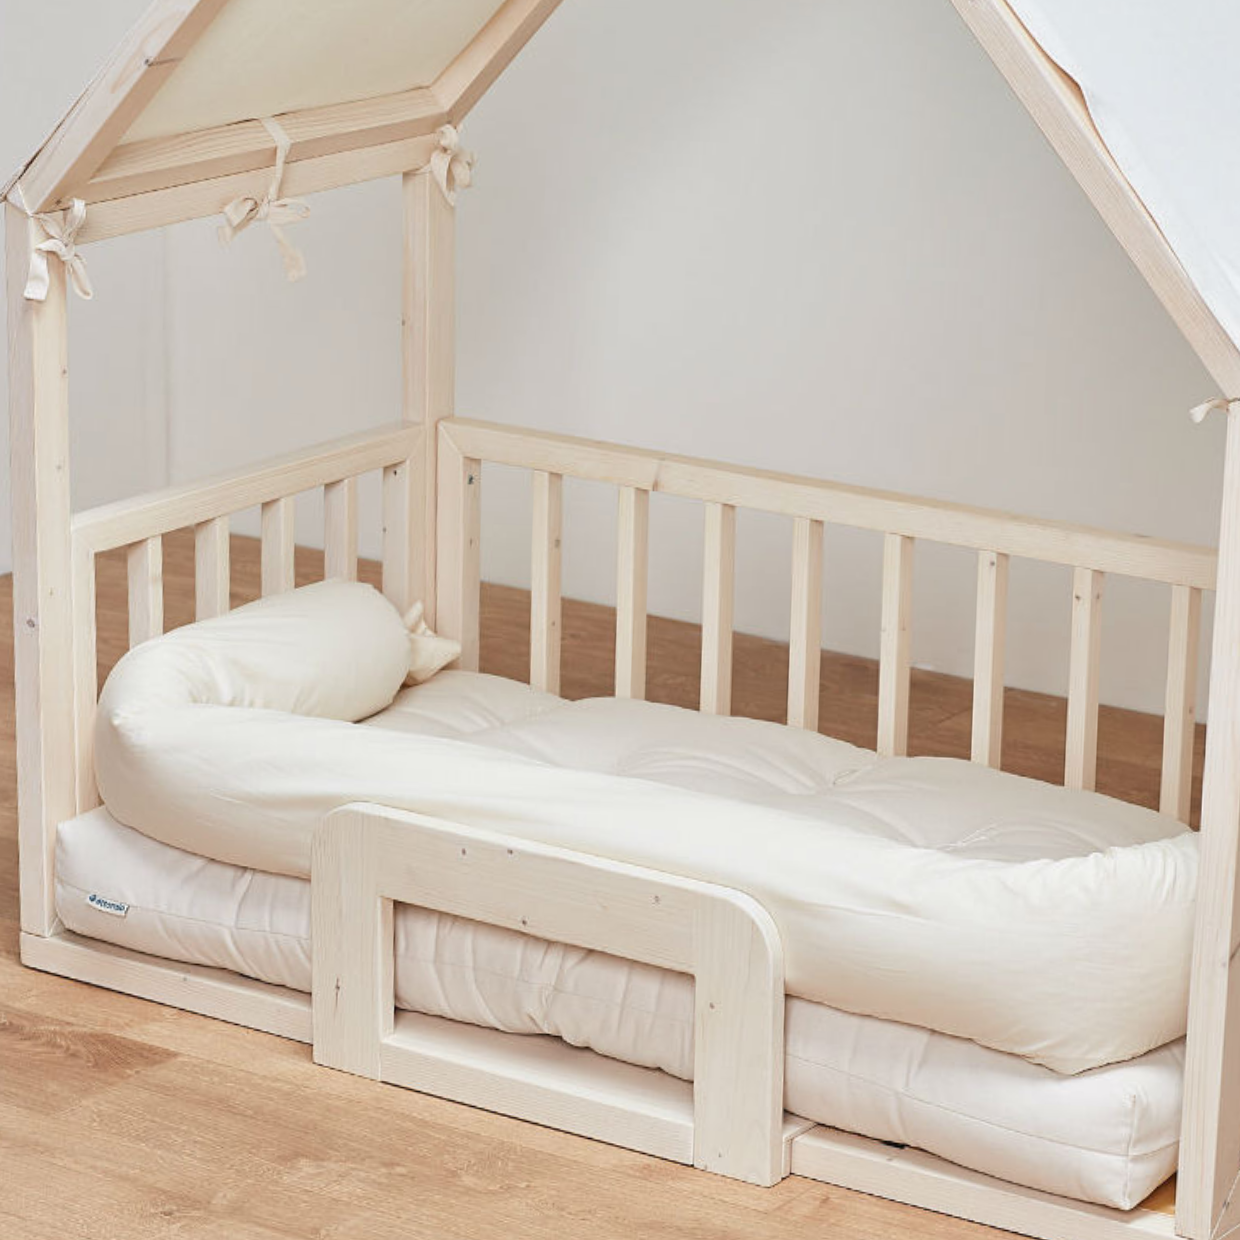 Housebed By Ettomio U2013 Ecofriendly Kids Wooden Bed, Inspired By Maria  Montessori (0+)